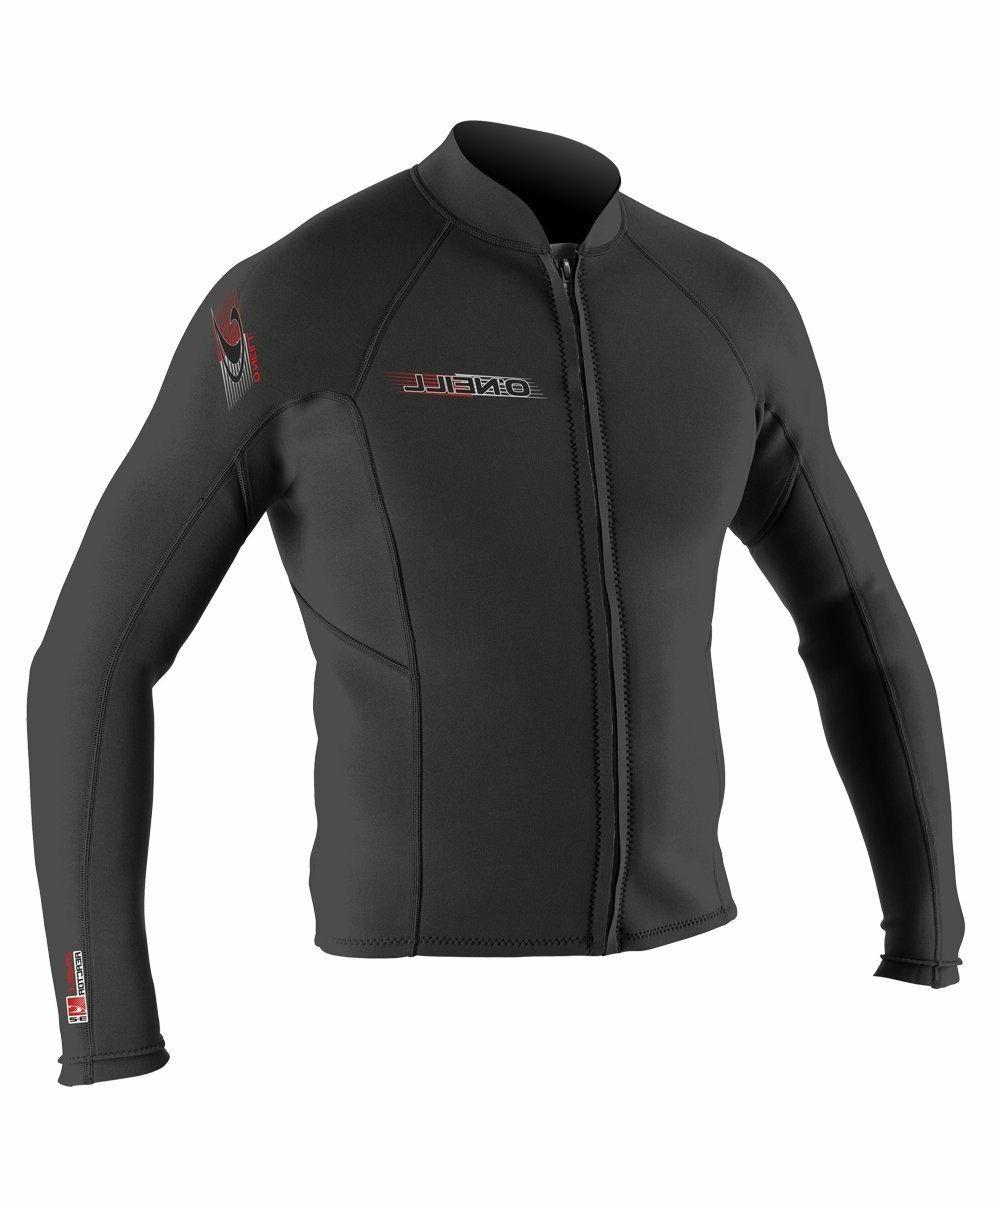 O'Neill Wetsuits Mens Superlite Jacket, Black, SMALL